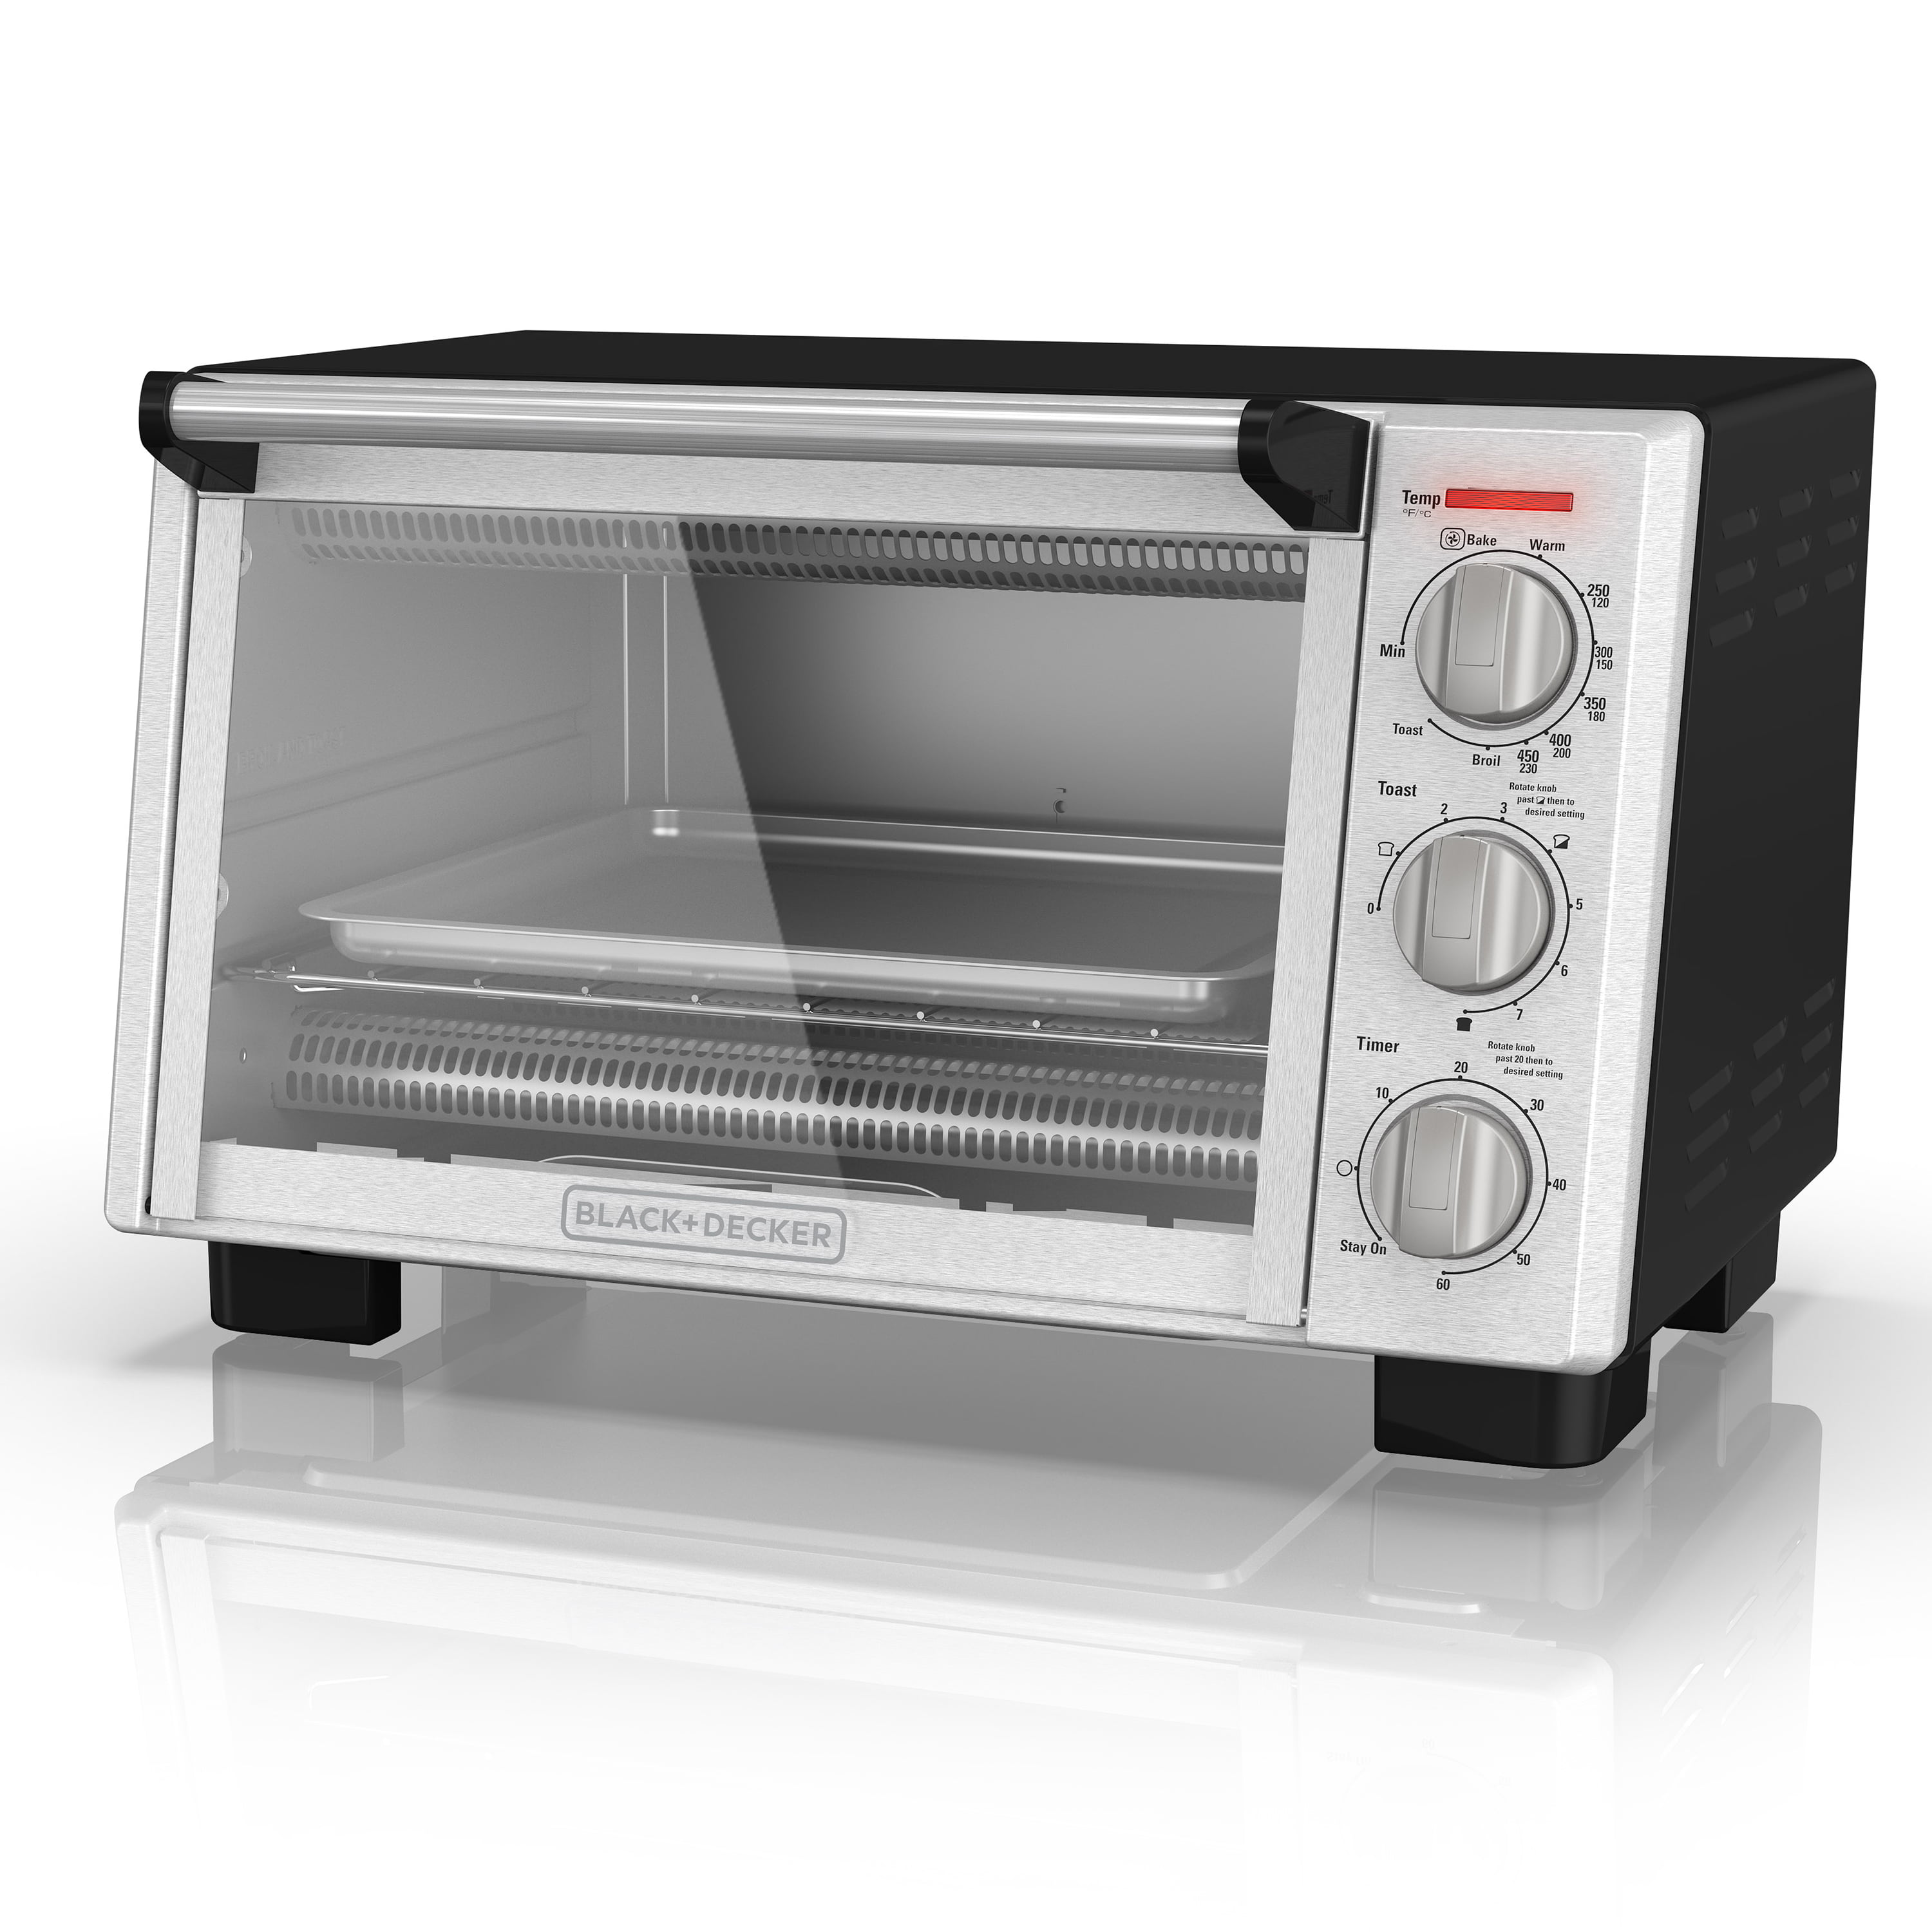 Black & Decker 6-Slice Convection Toaster Oven, Stainless Steel, TO2055S by BLACK DECKER